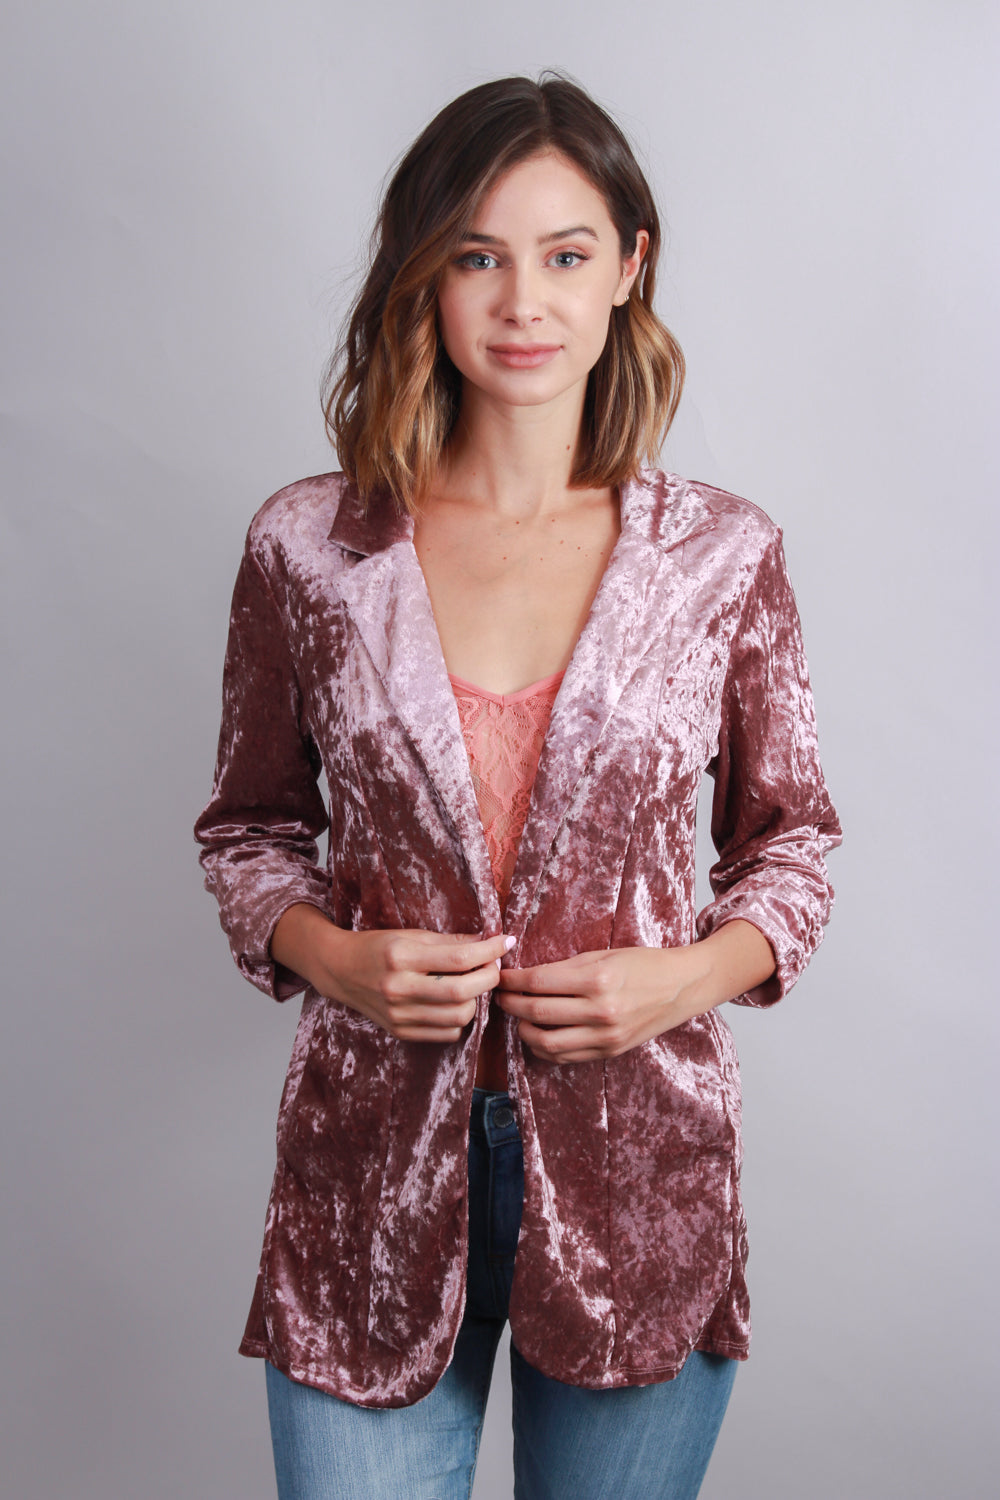 Women's Crushed Velvet Sleeve Blazer Top